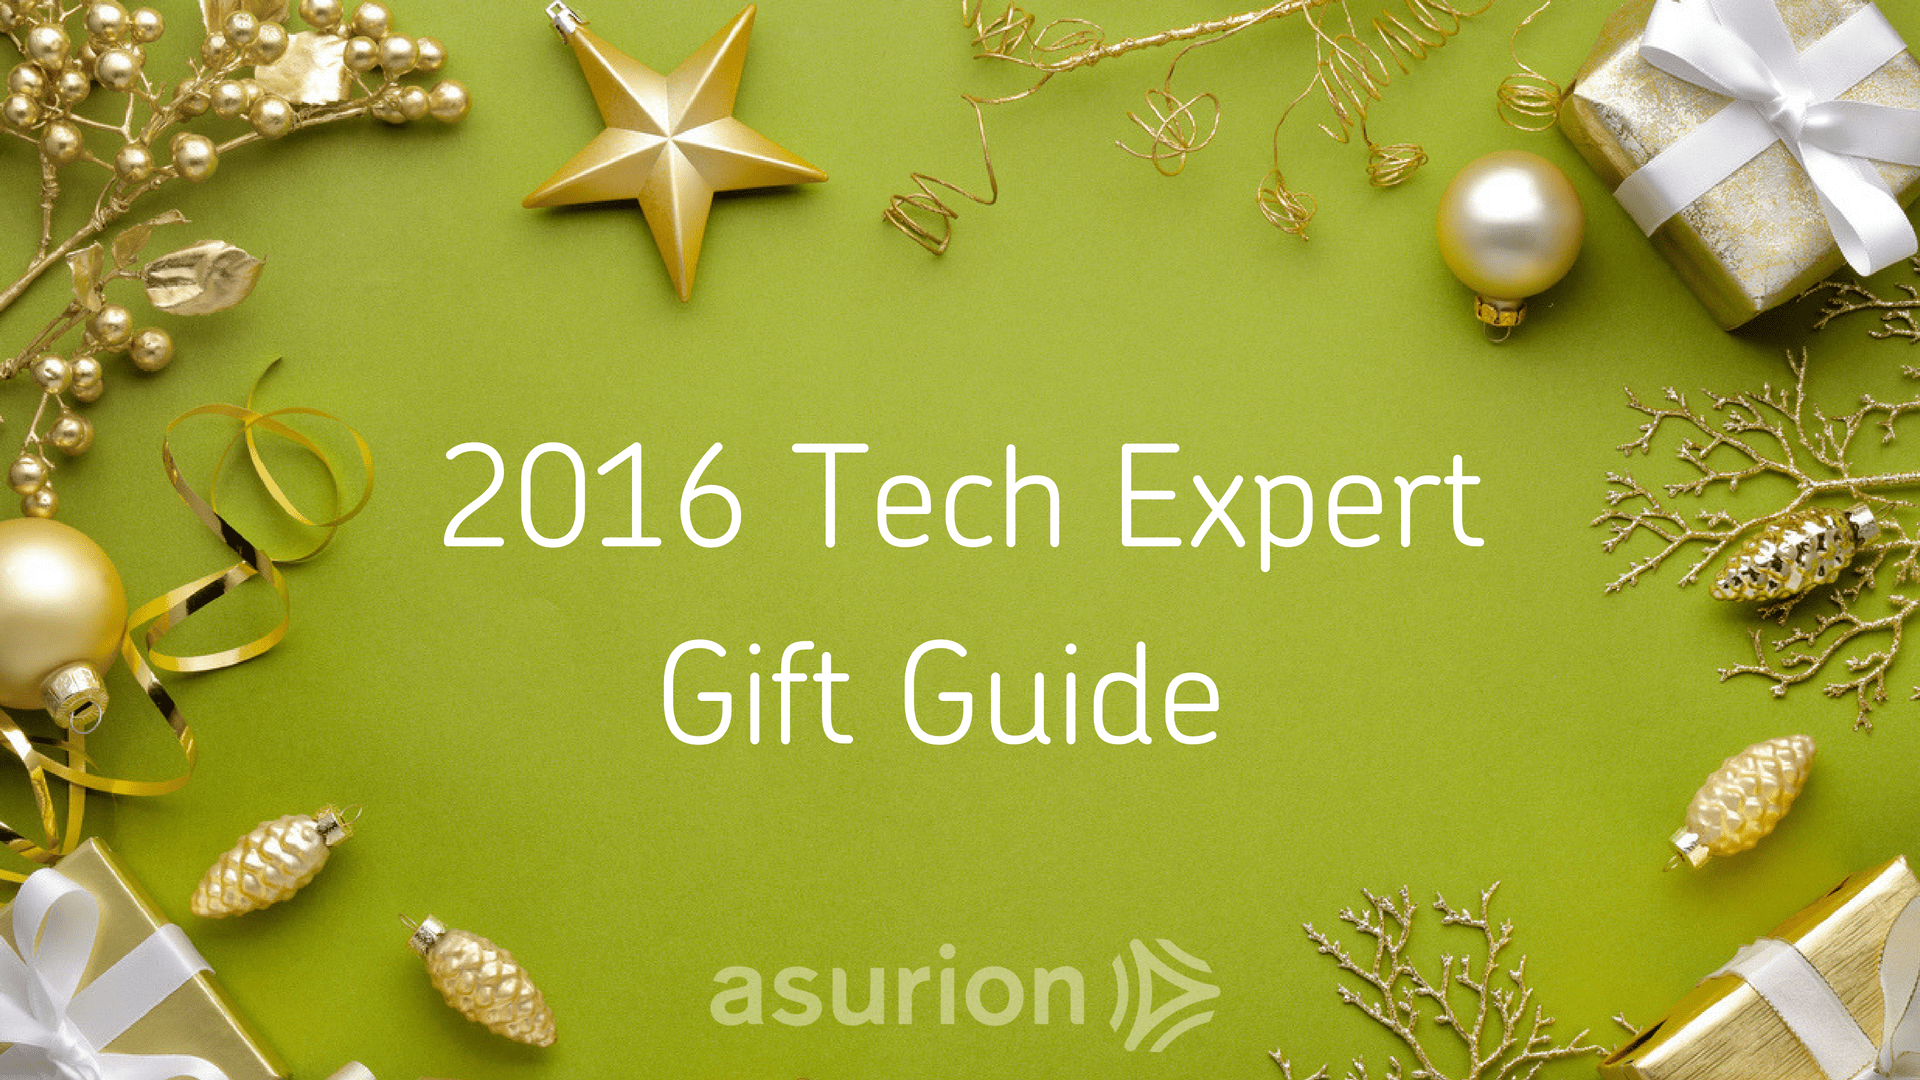 Top Tech Gifts According to the Experts